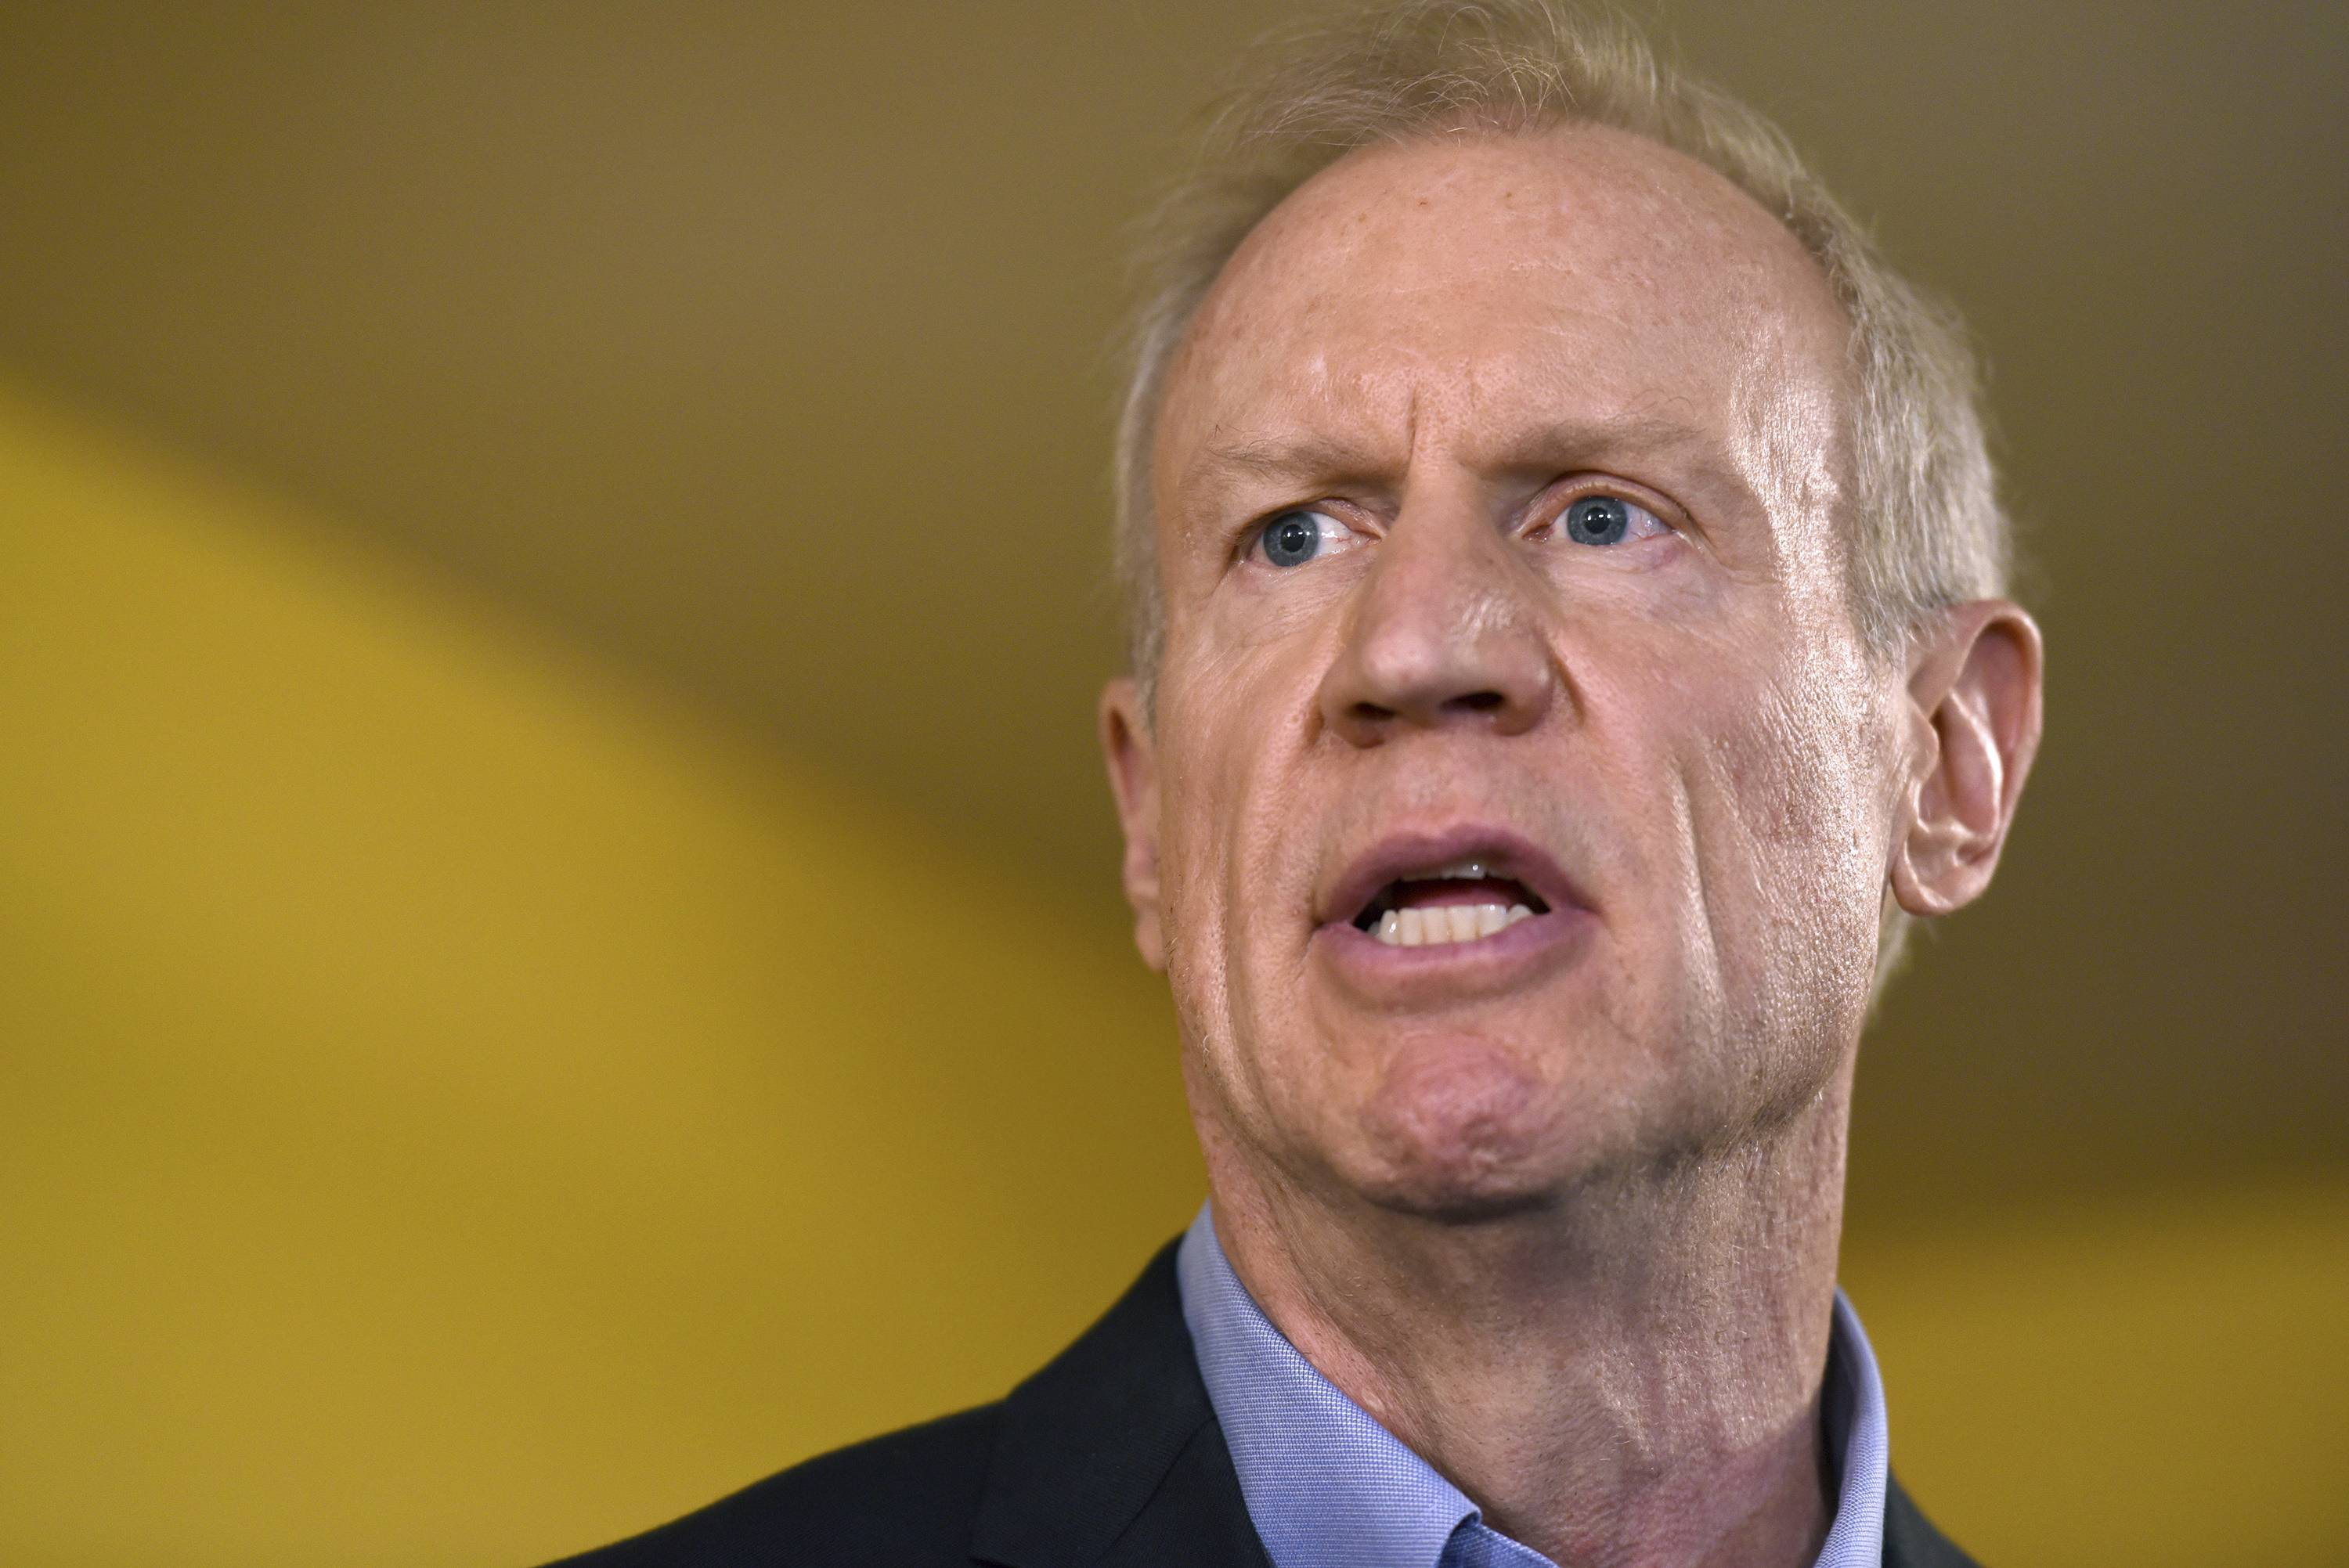 Gov. Bruce Rauner plans to sign into law on Monday both an automatic voter registration and an immigration measure that would limit the role of local law enforcement in federal efforts